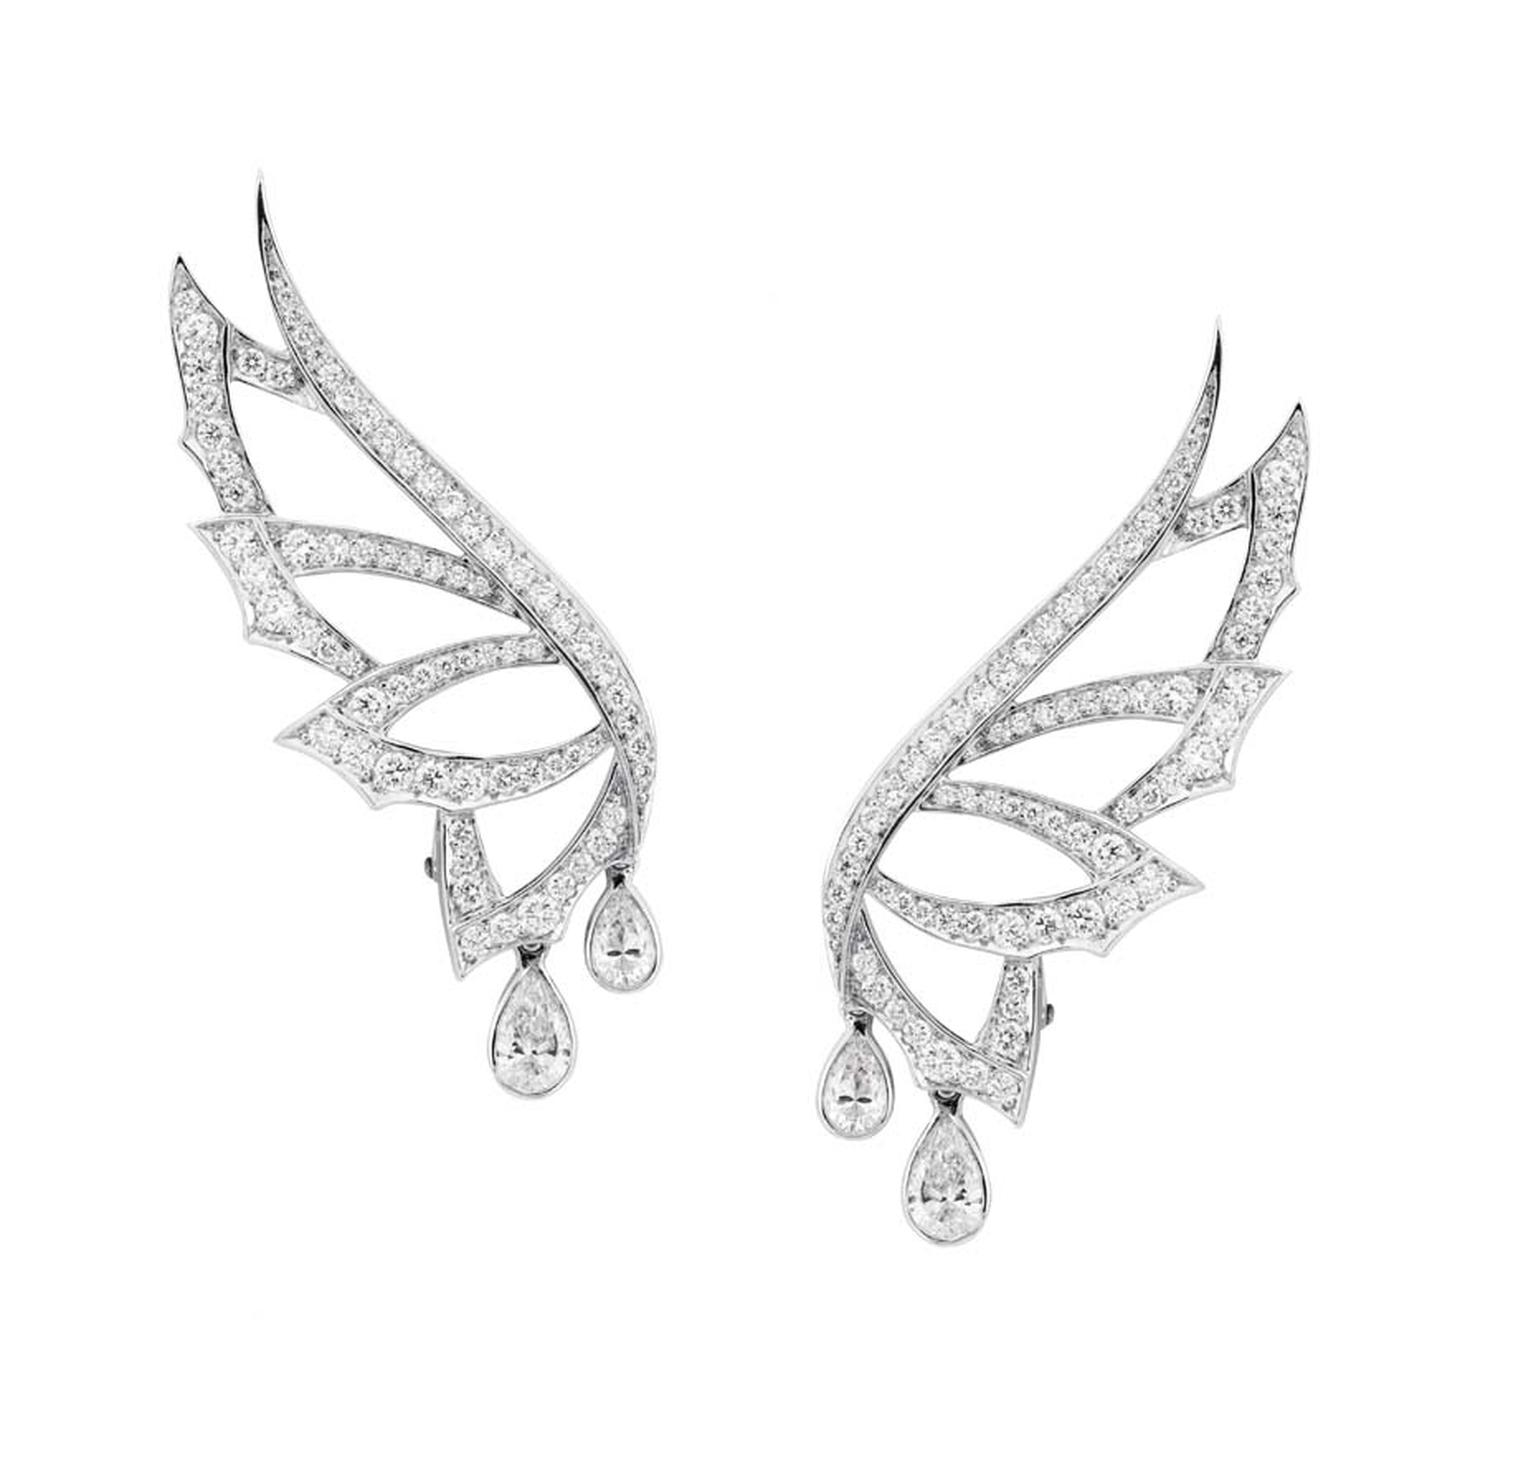 Stephen Webster ear climbers in white gold from the Magnipheasant collection with pear-shaped and round white diamonds.